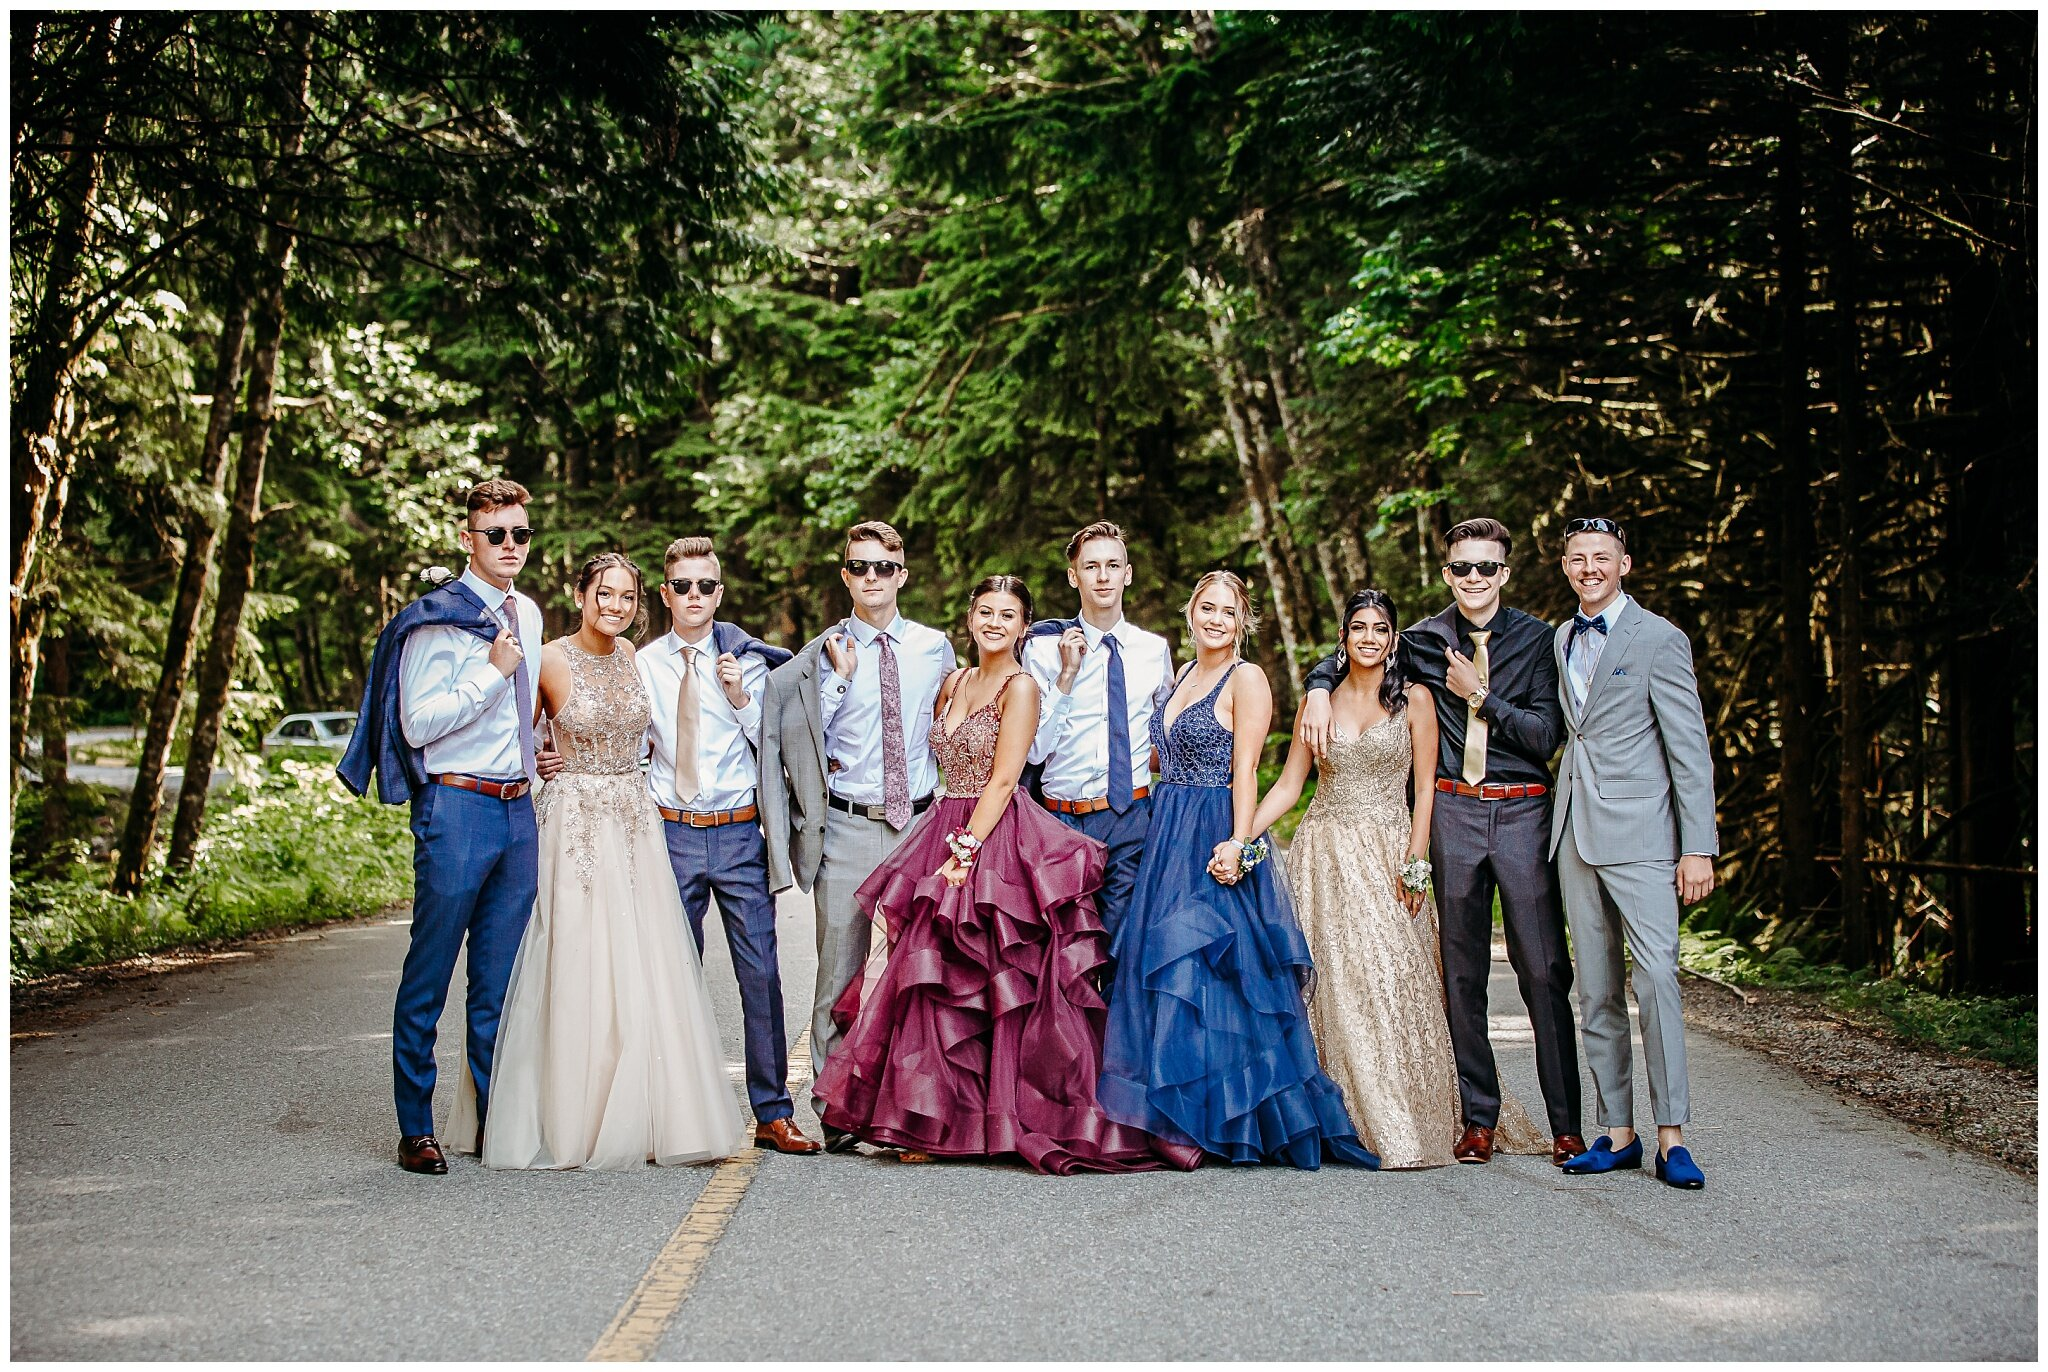 Abbotsford Highschool Prom Graduation Photographer 2019 Abbotsford fun bright_0018.jpg